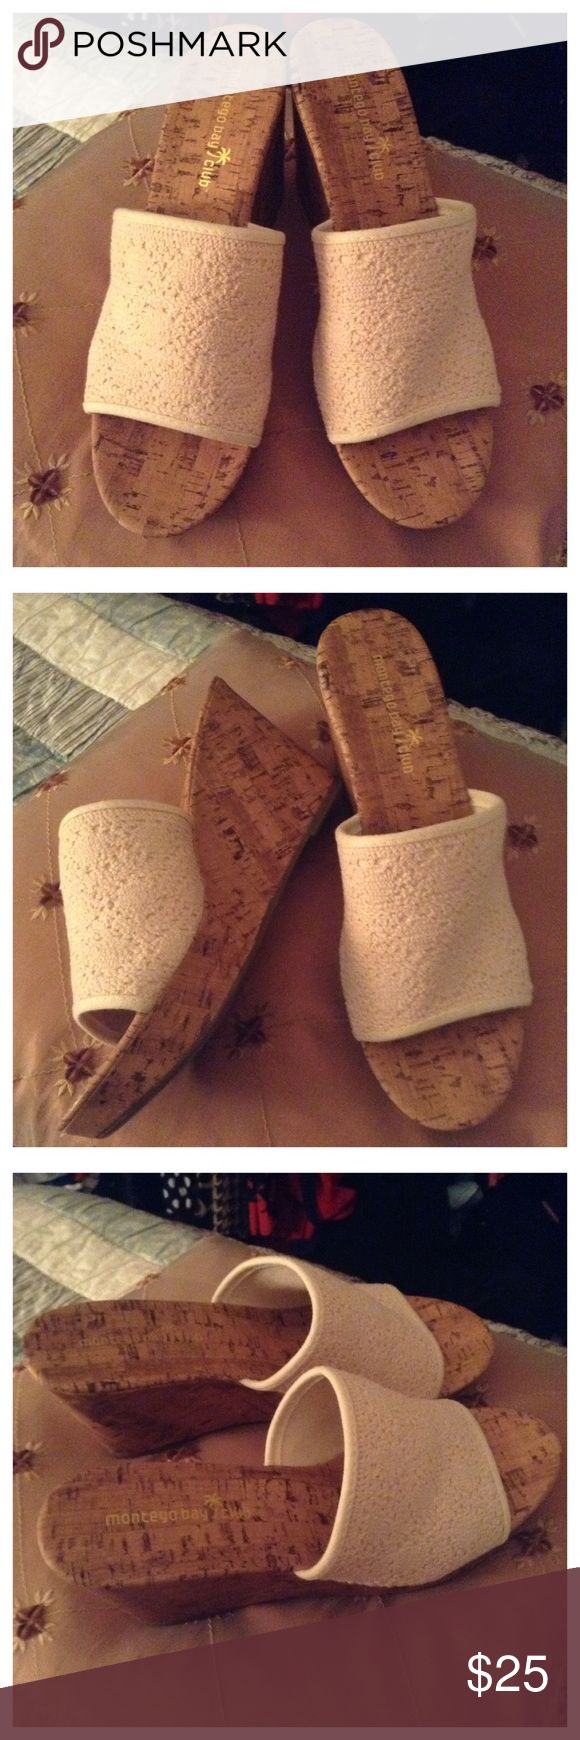 """Montego Bay 🌴 Club® Cream Crochet Wedge Sandals Montego Bay 🌴 Club® Cream crochet cork wedge sandals. Approx.: 4"""" wedge, 1"""" platform. NEW WITHOUT BOX! Perfect for warm weather days ahead!! ⭐No bundles for shoes or boots together due to Poshmarks weight restriction! ⭐No trades. ⭐Fast shipping. ⭐No PayPal!⭐️️Price firm, no discounts on bundles! Montego Bay Club® Shoes Sandals"""